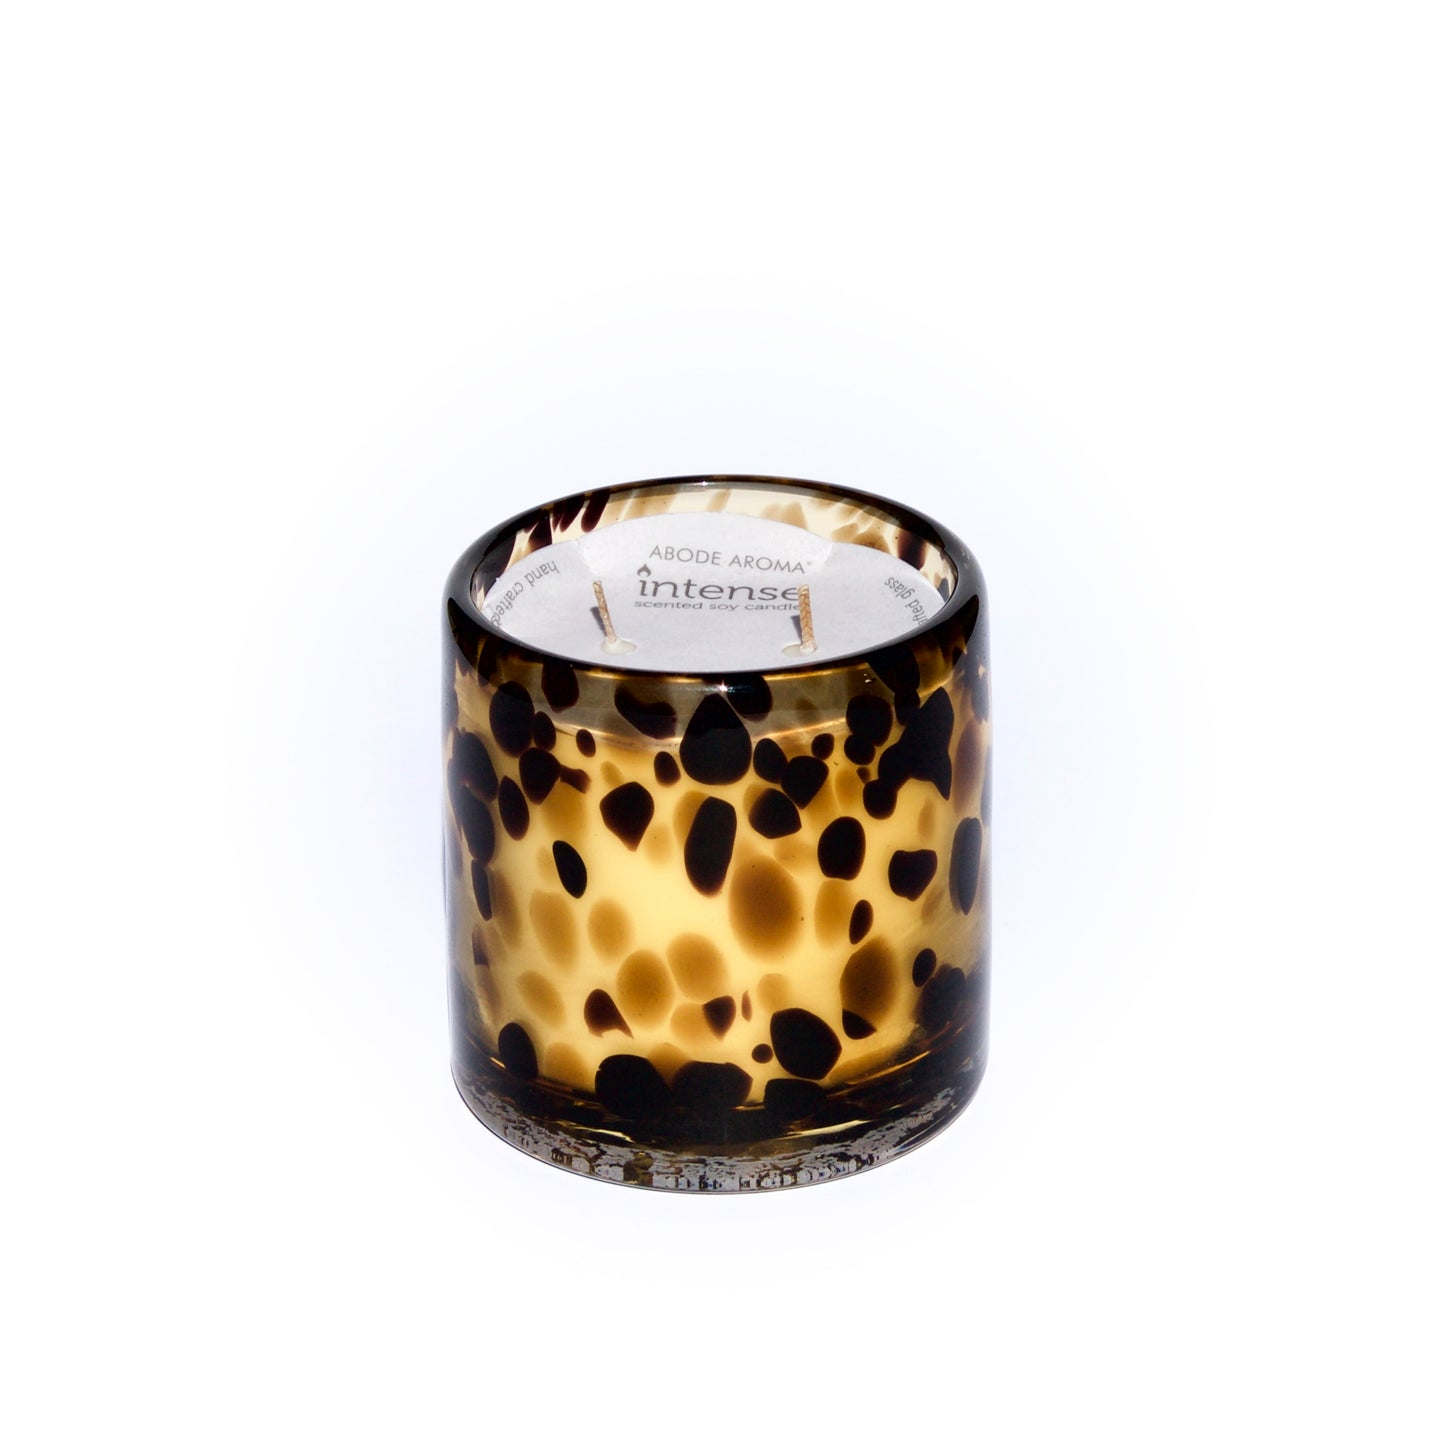 Intense Zanzibar Scented Soy Candle Sparkling Citrus, Peach & Vanilla Skilfully Leopard candle